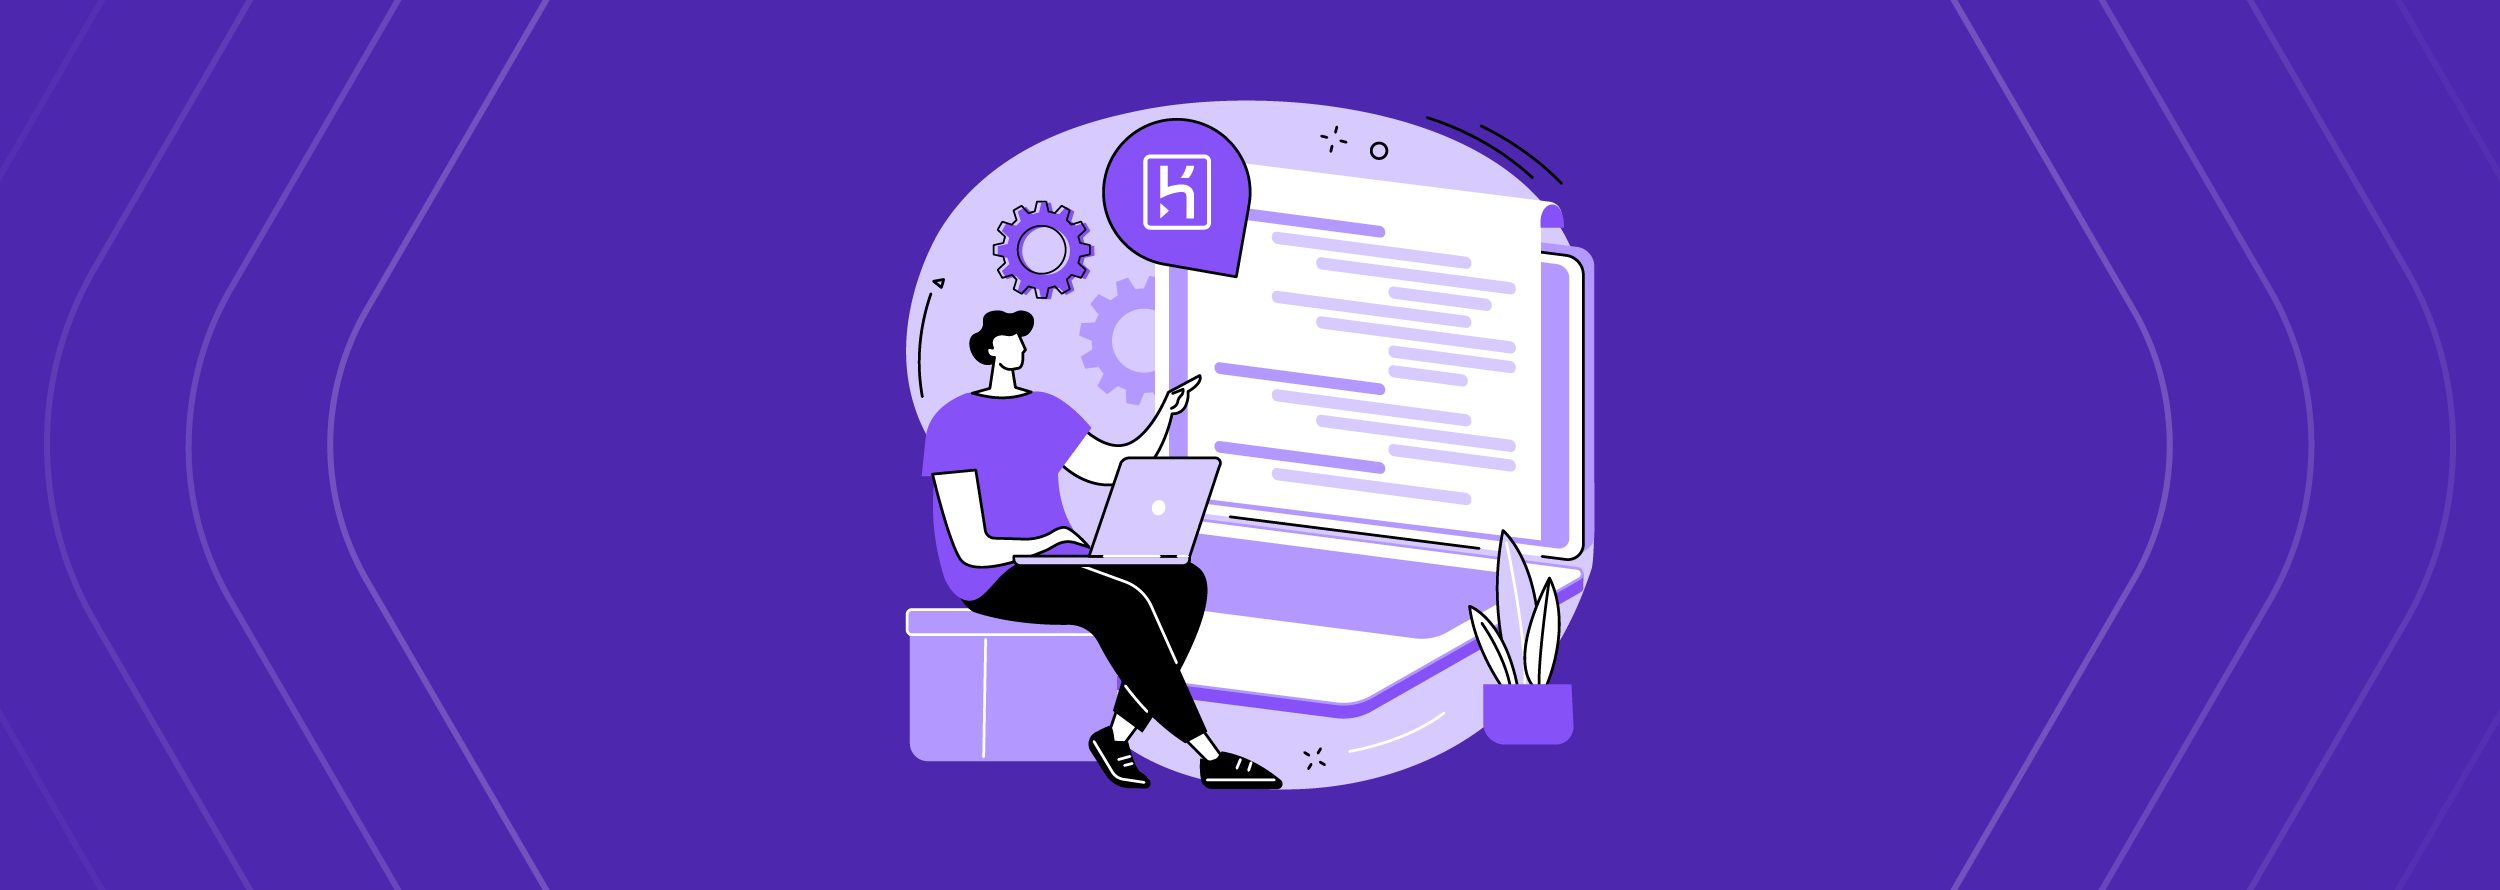 How to get the most out of Heroku Pipelines